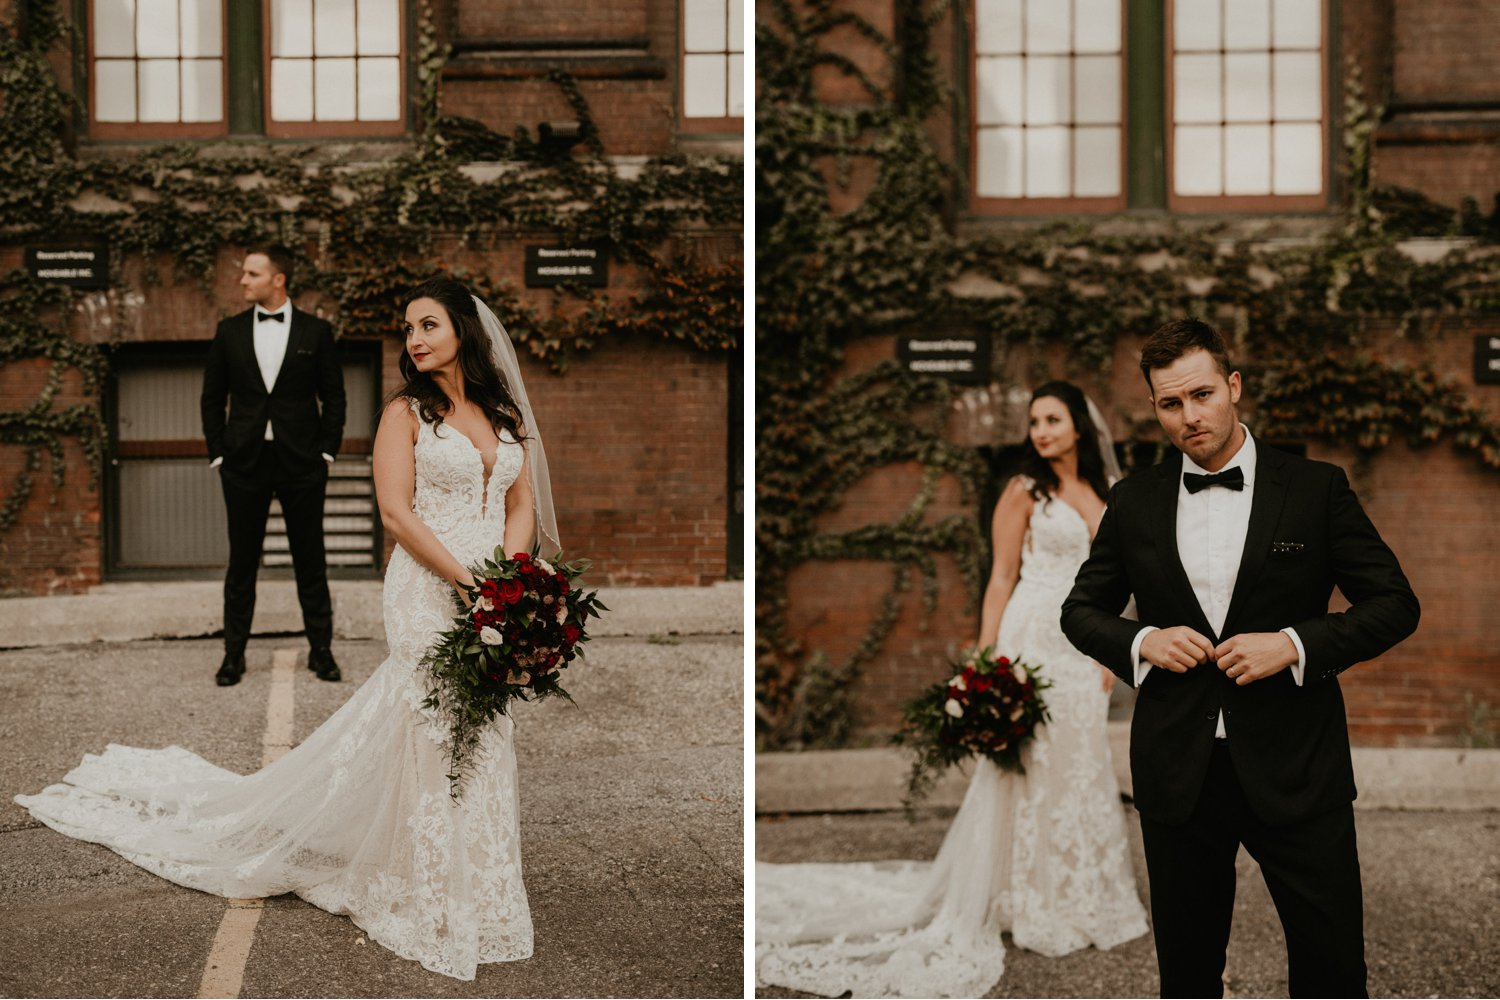 Caffino Wedding - bride and groom portraits near brick building with vines